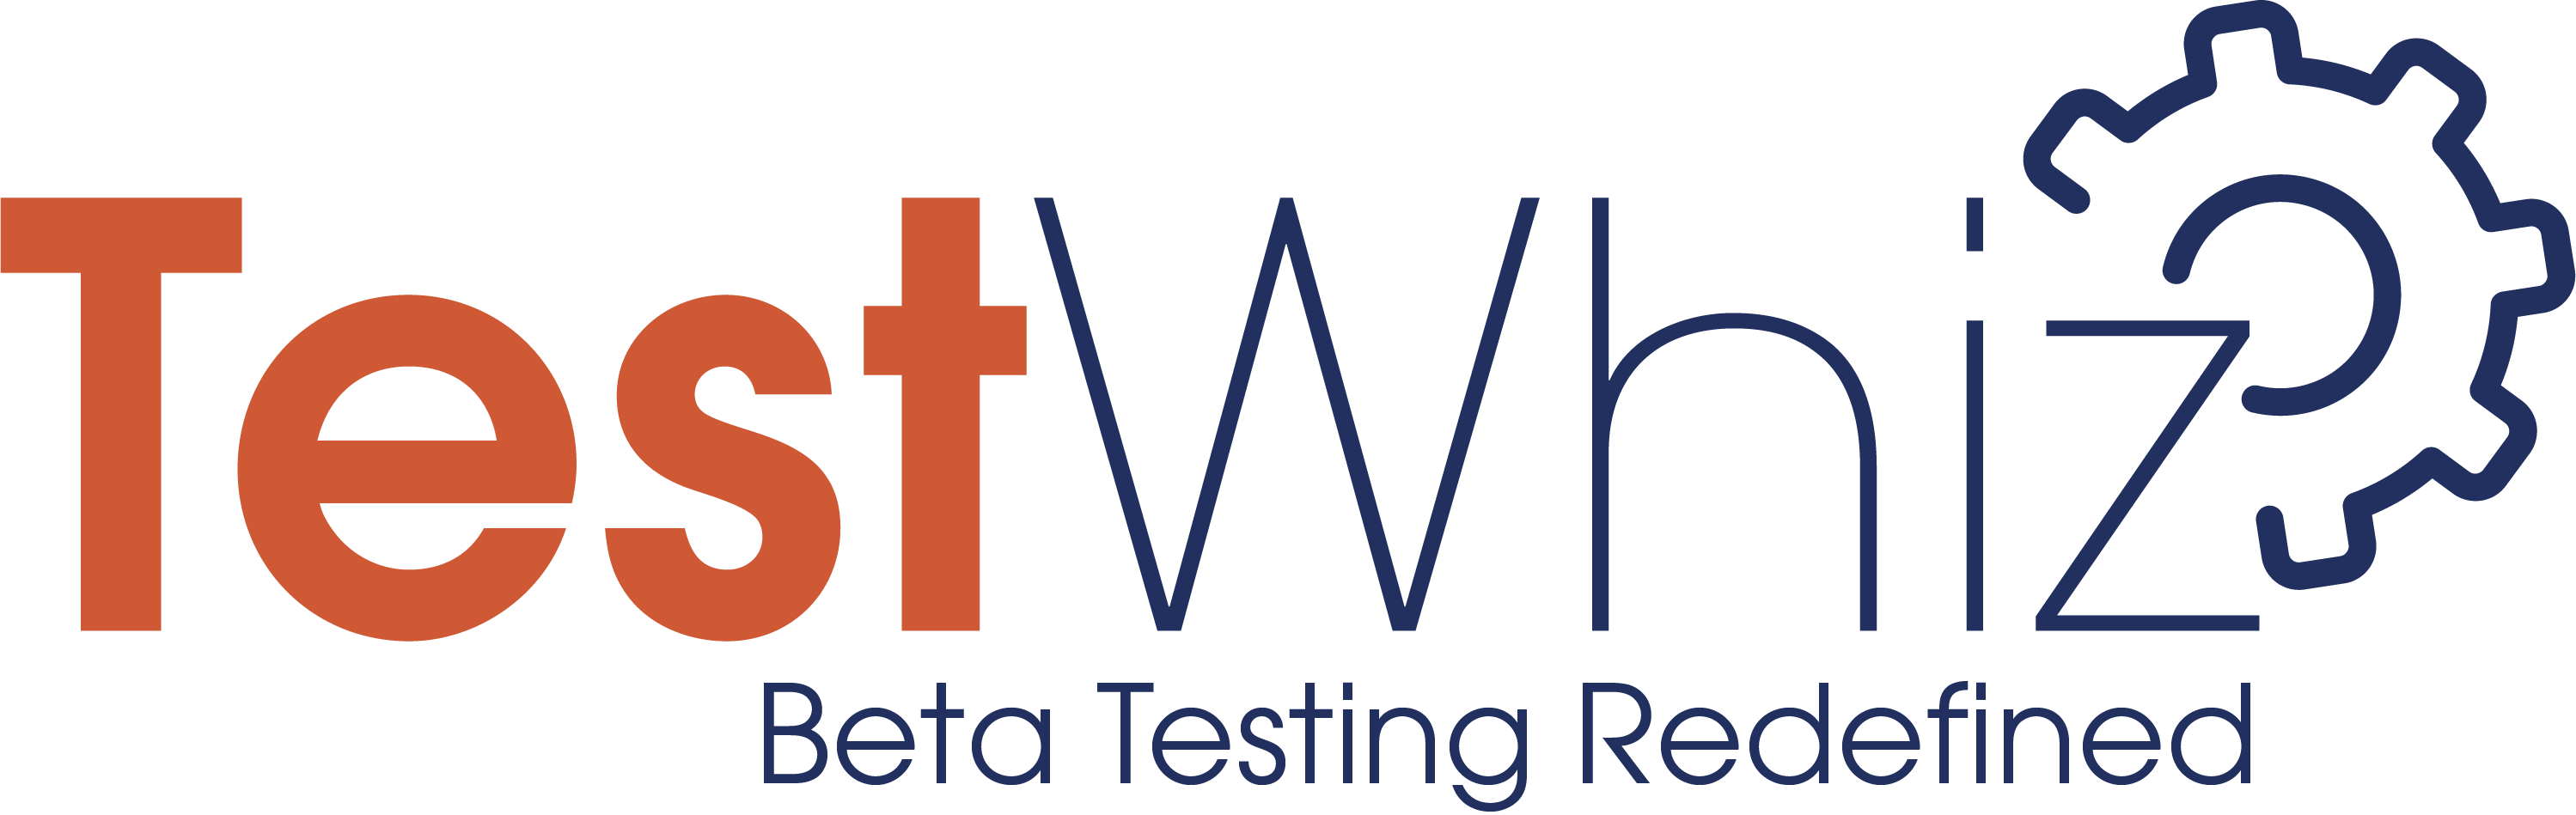 Testwhiz, testing operations, beta testing, usability testing, alpha testing, functional testing, customer focused testing